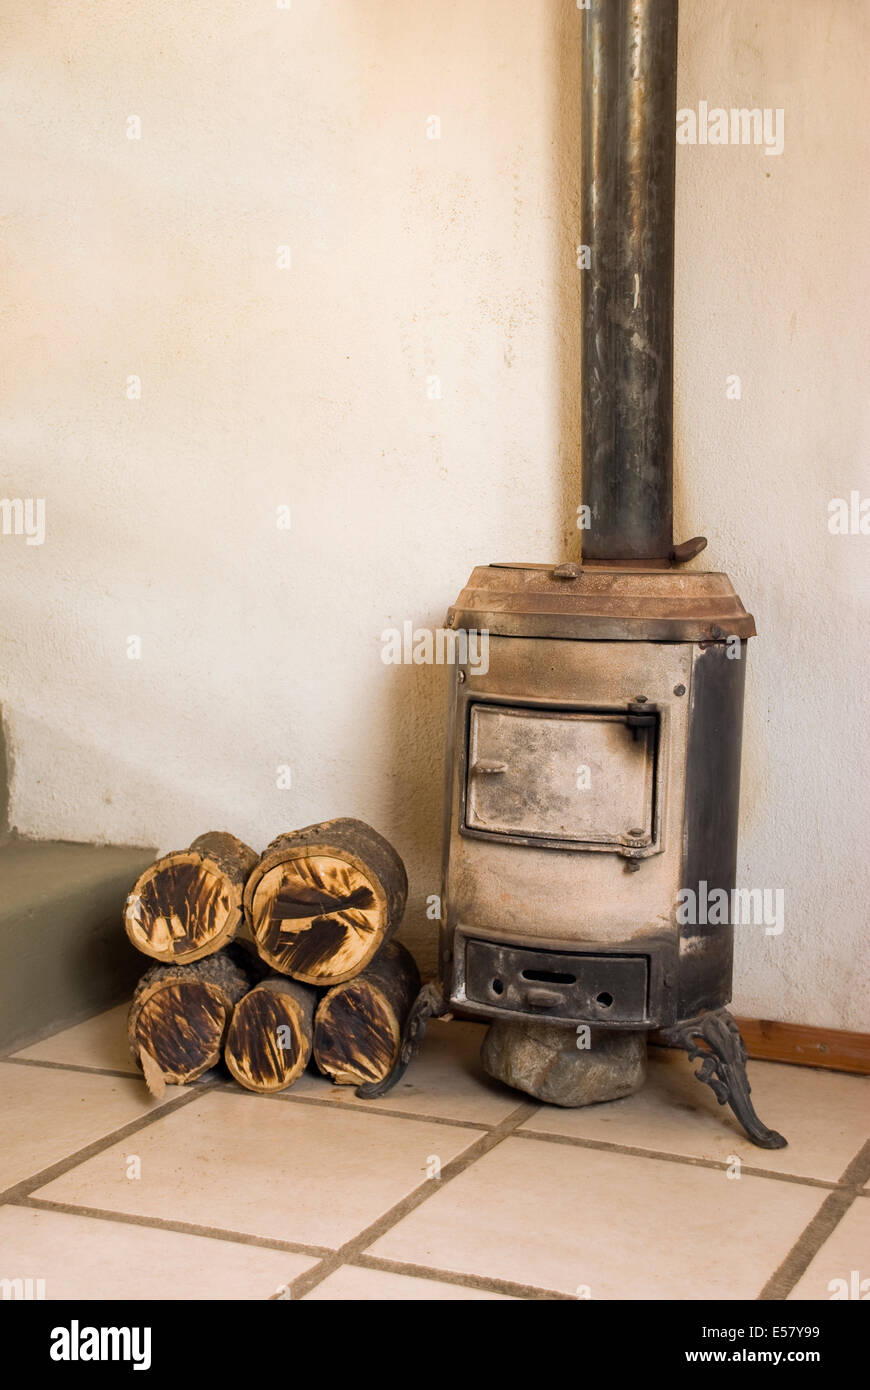 A salamander stove and some logs next to it - Stock Image